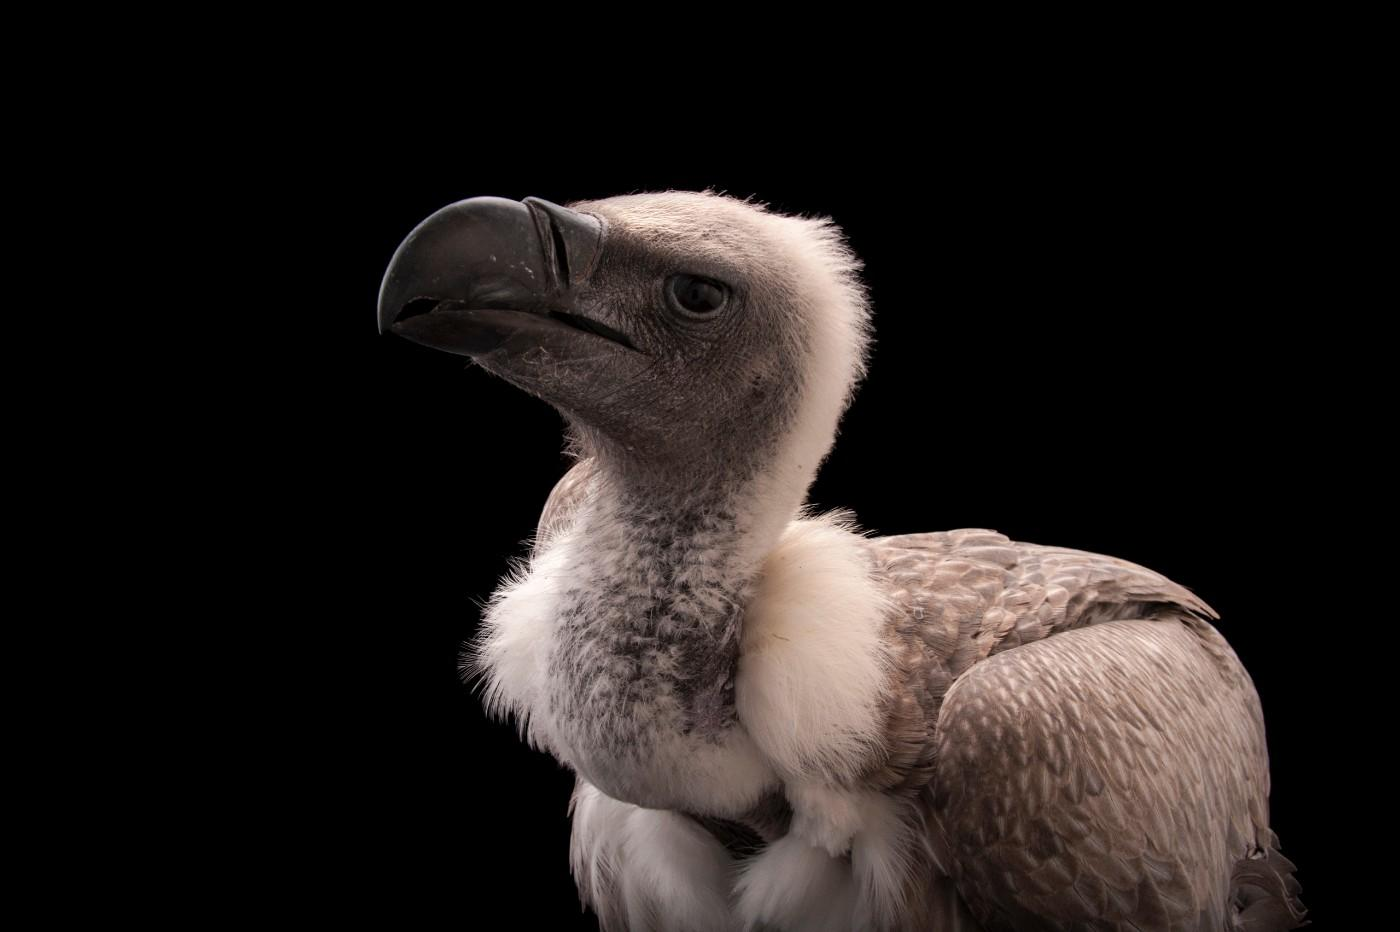 A critically endangered African white backed vulture, Gyps africanus, at the Cleveland Metroparks Zoo.